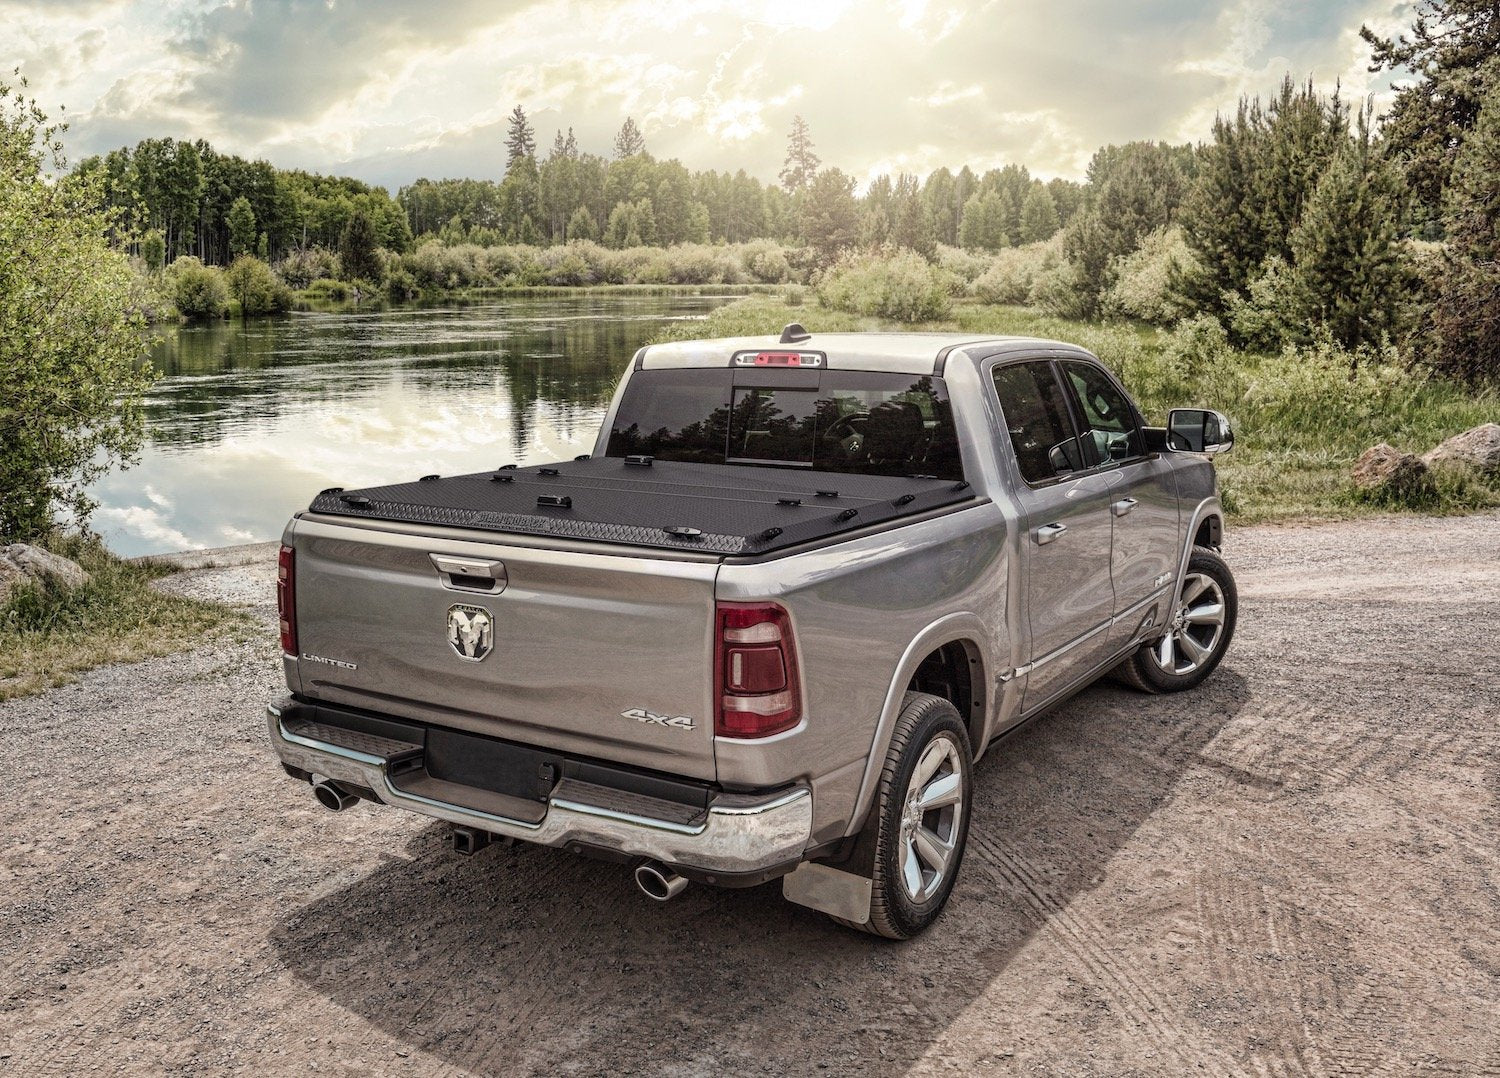 Dodge Ram Truck Bed For Sale >> Heavy Duty Hard Tonneau Covers Diamondback Covers